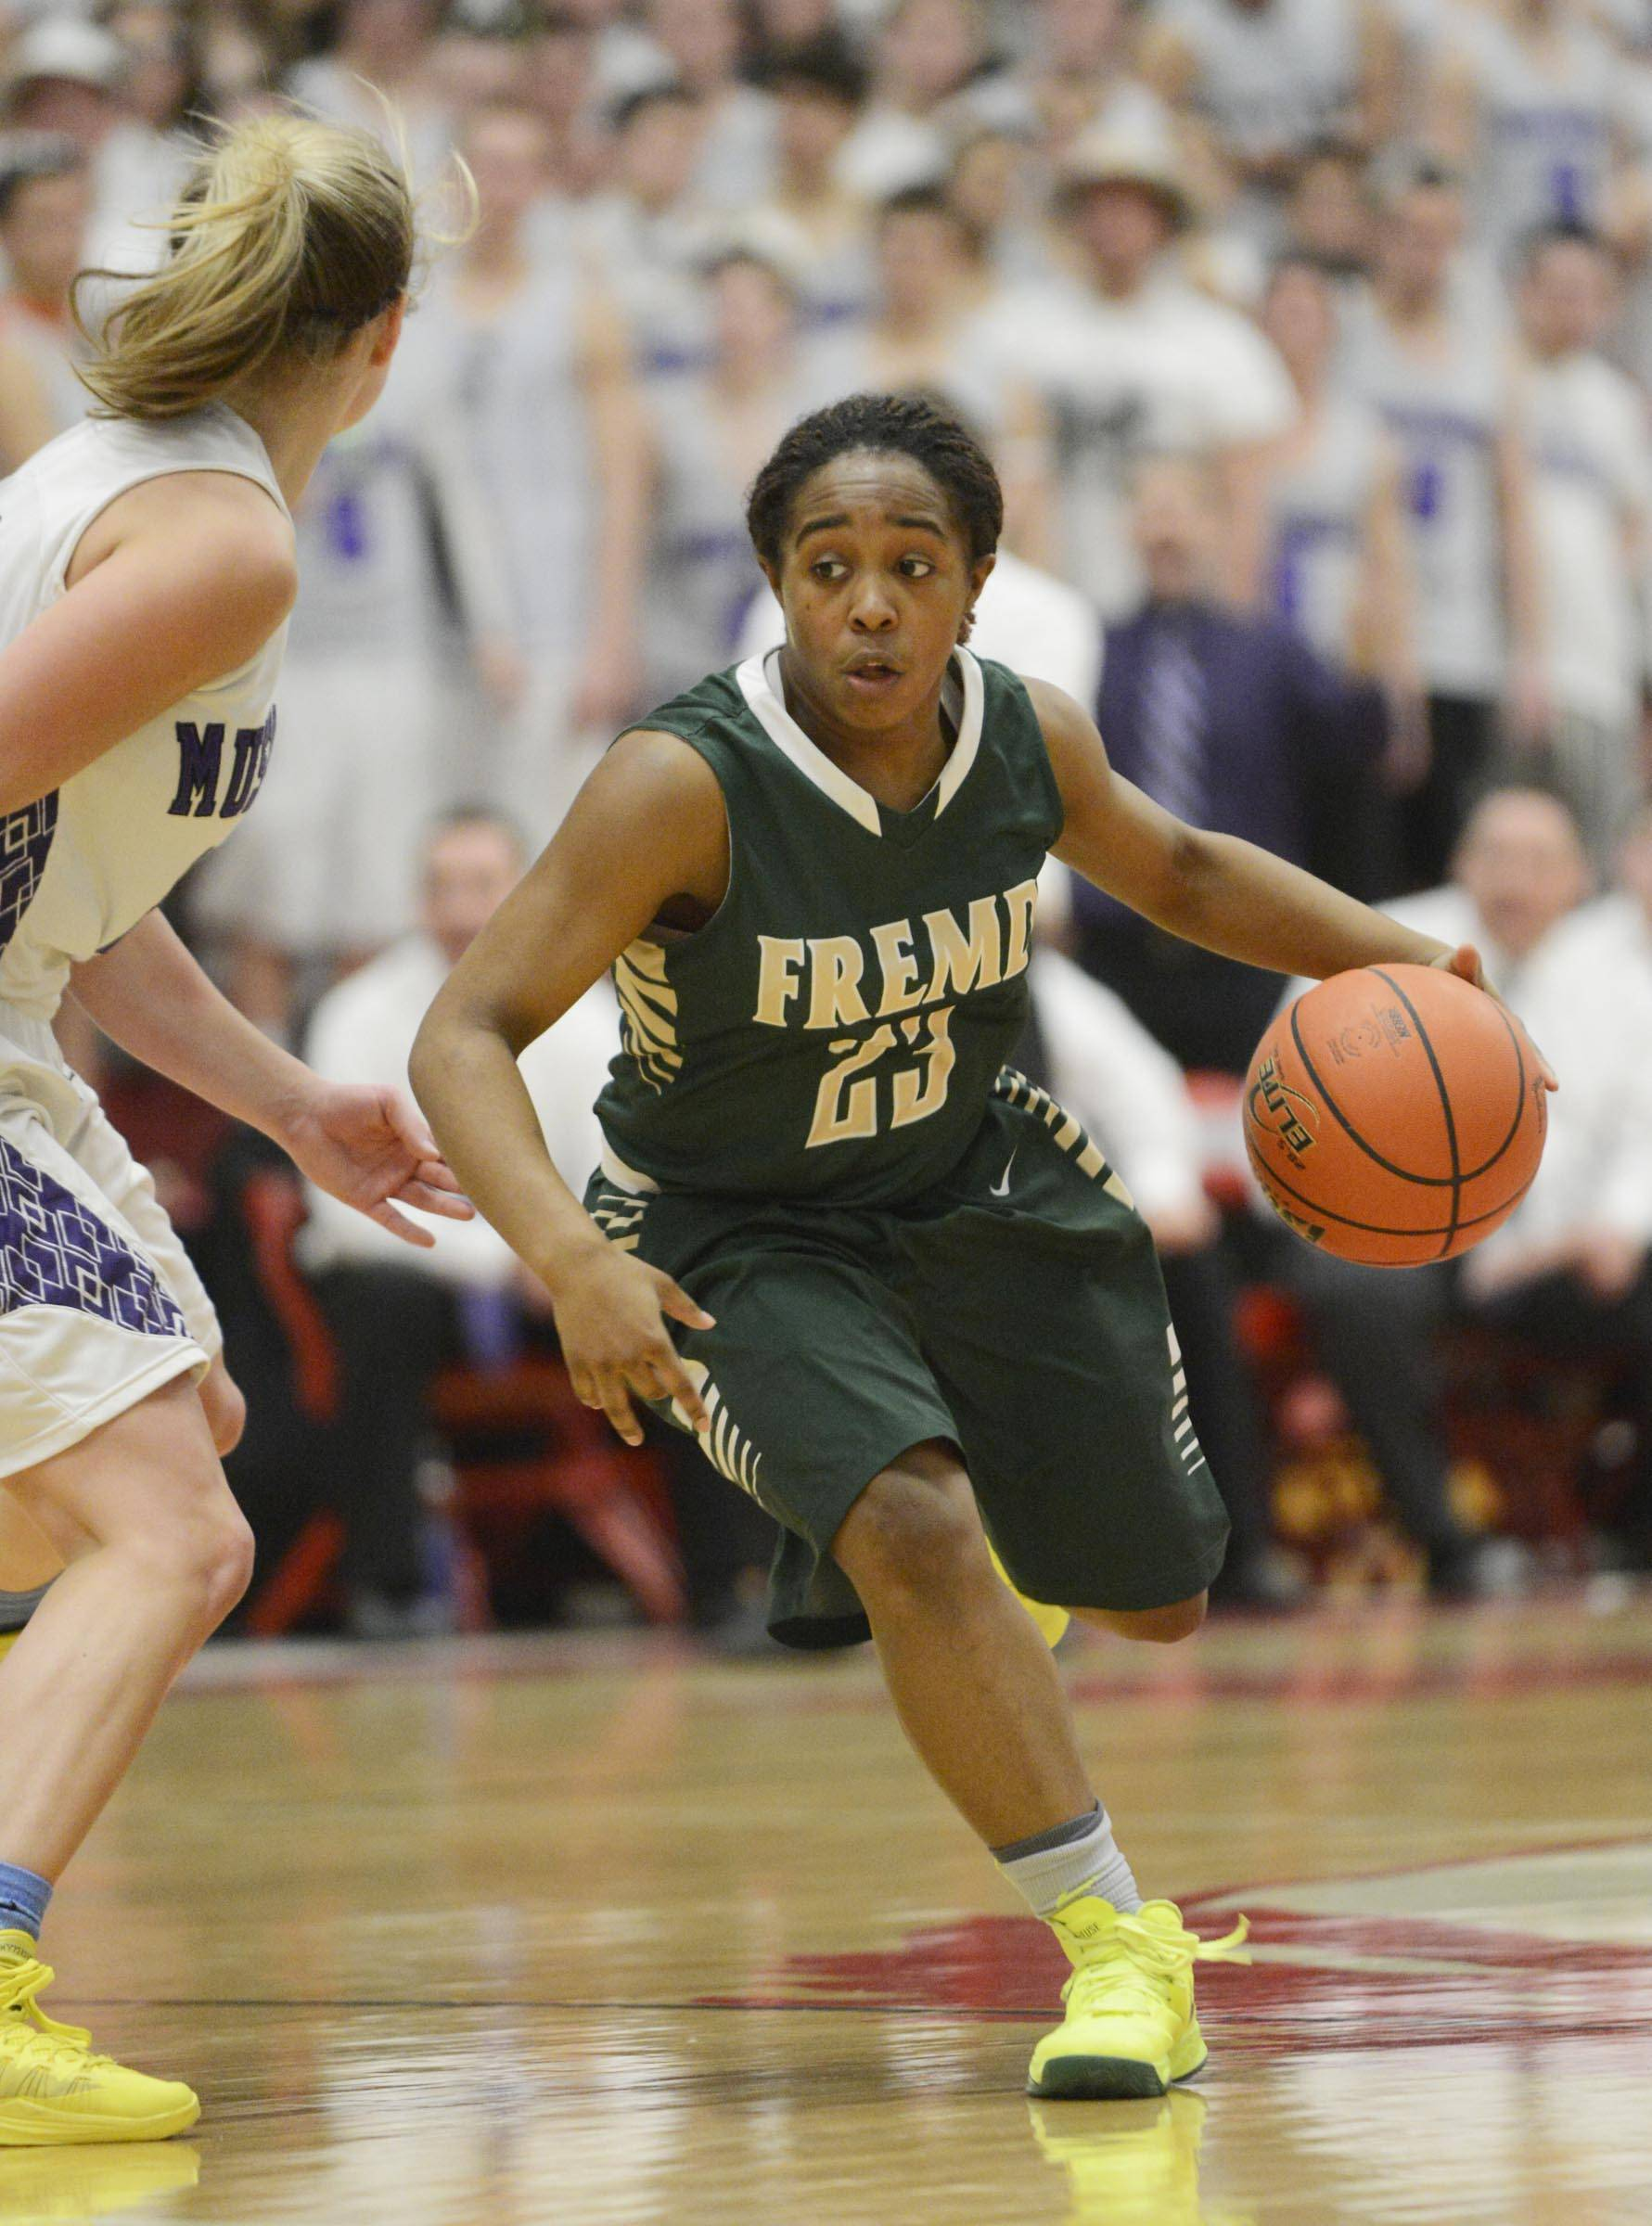 Images from the Fremd vs. Rolling Meadows girls sectional title game Thursday, February 27, 2014 in Barrington.